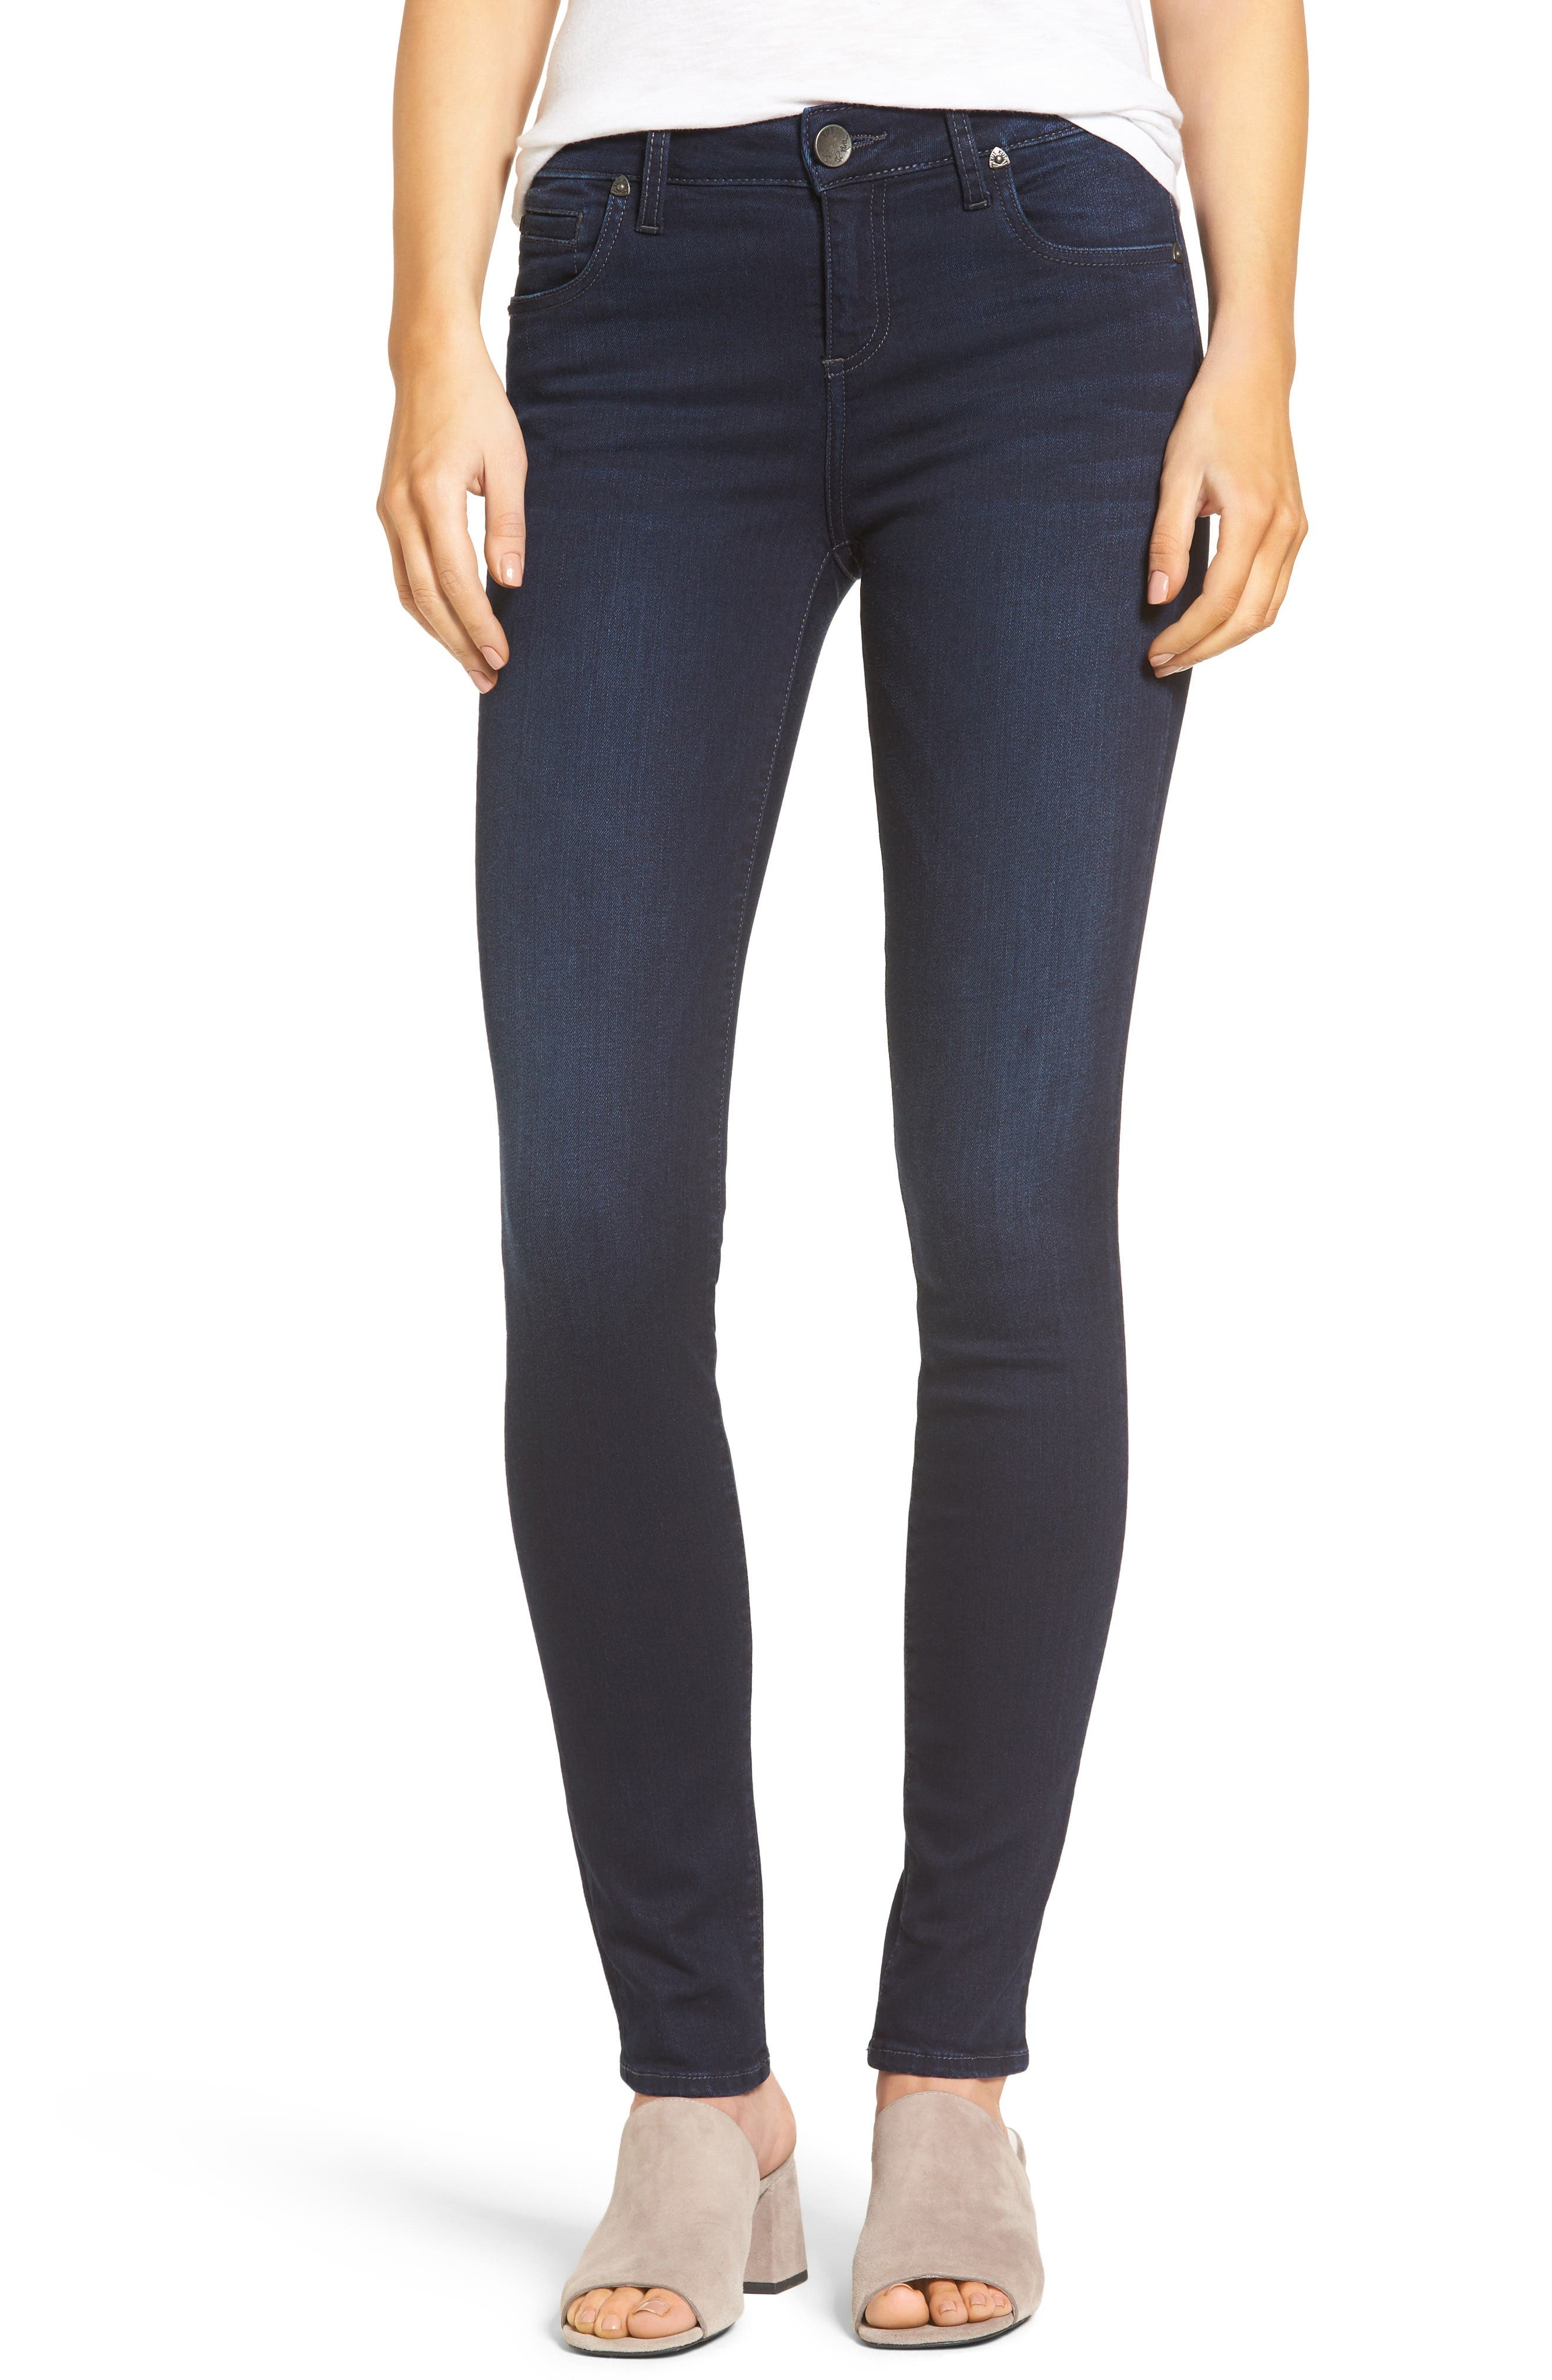 KUT FROM THE KLOTH, Diana Stretch Skinny Jeans, Main thumbnail 1, color, 490